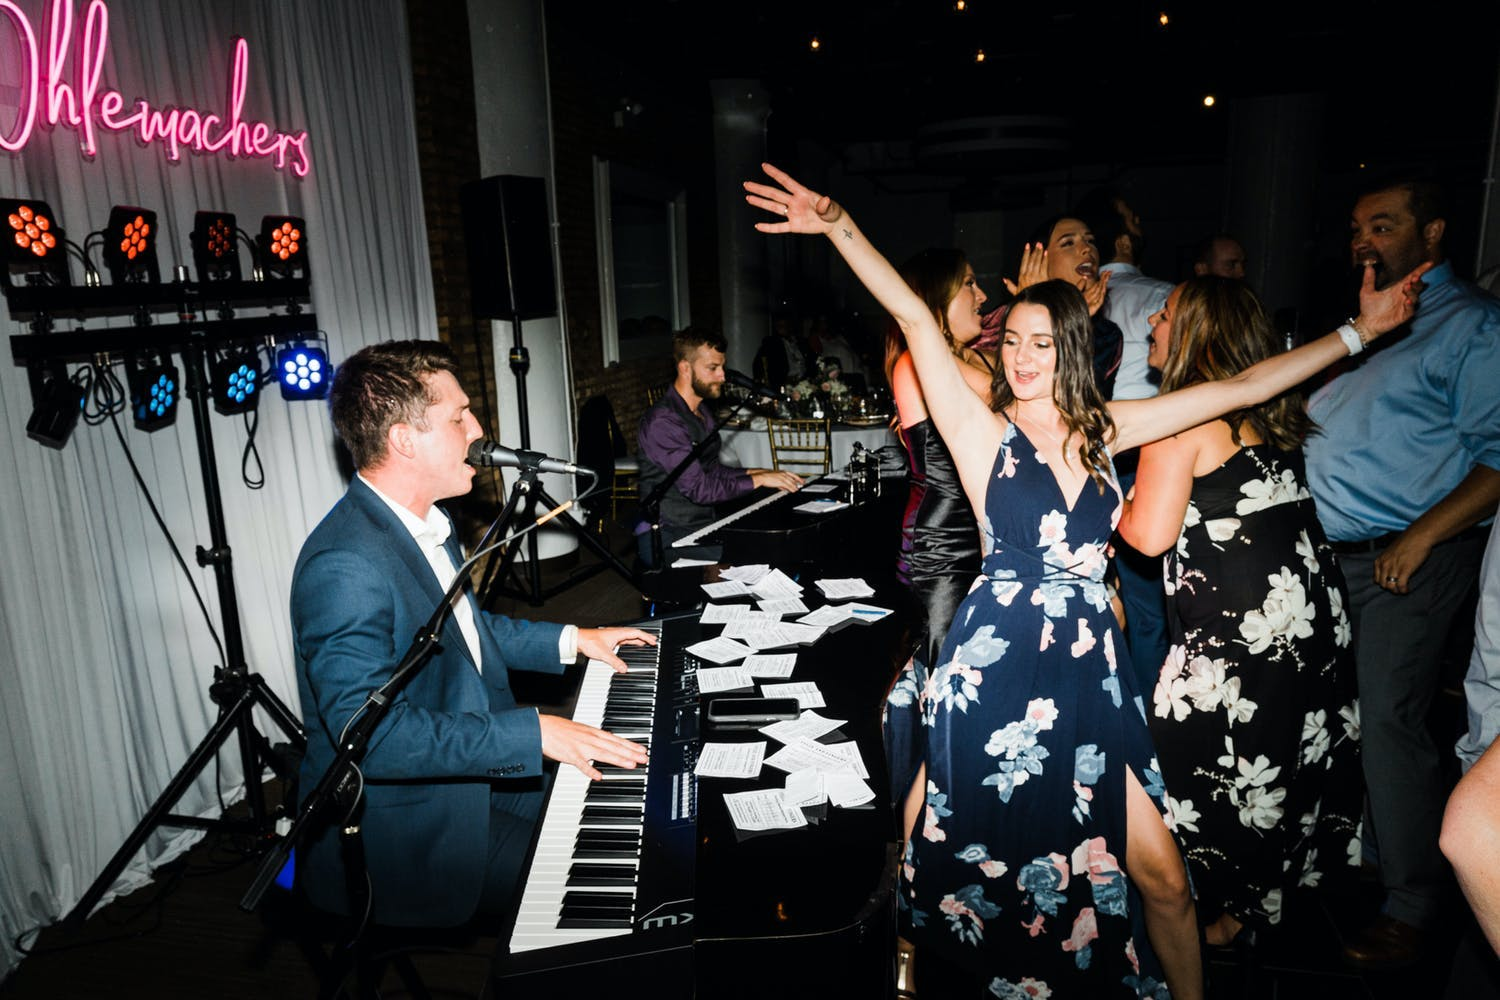 Wedding guest dances next to dueling pianos at wedding reception   PartySlate